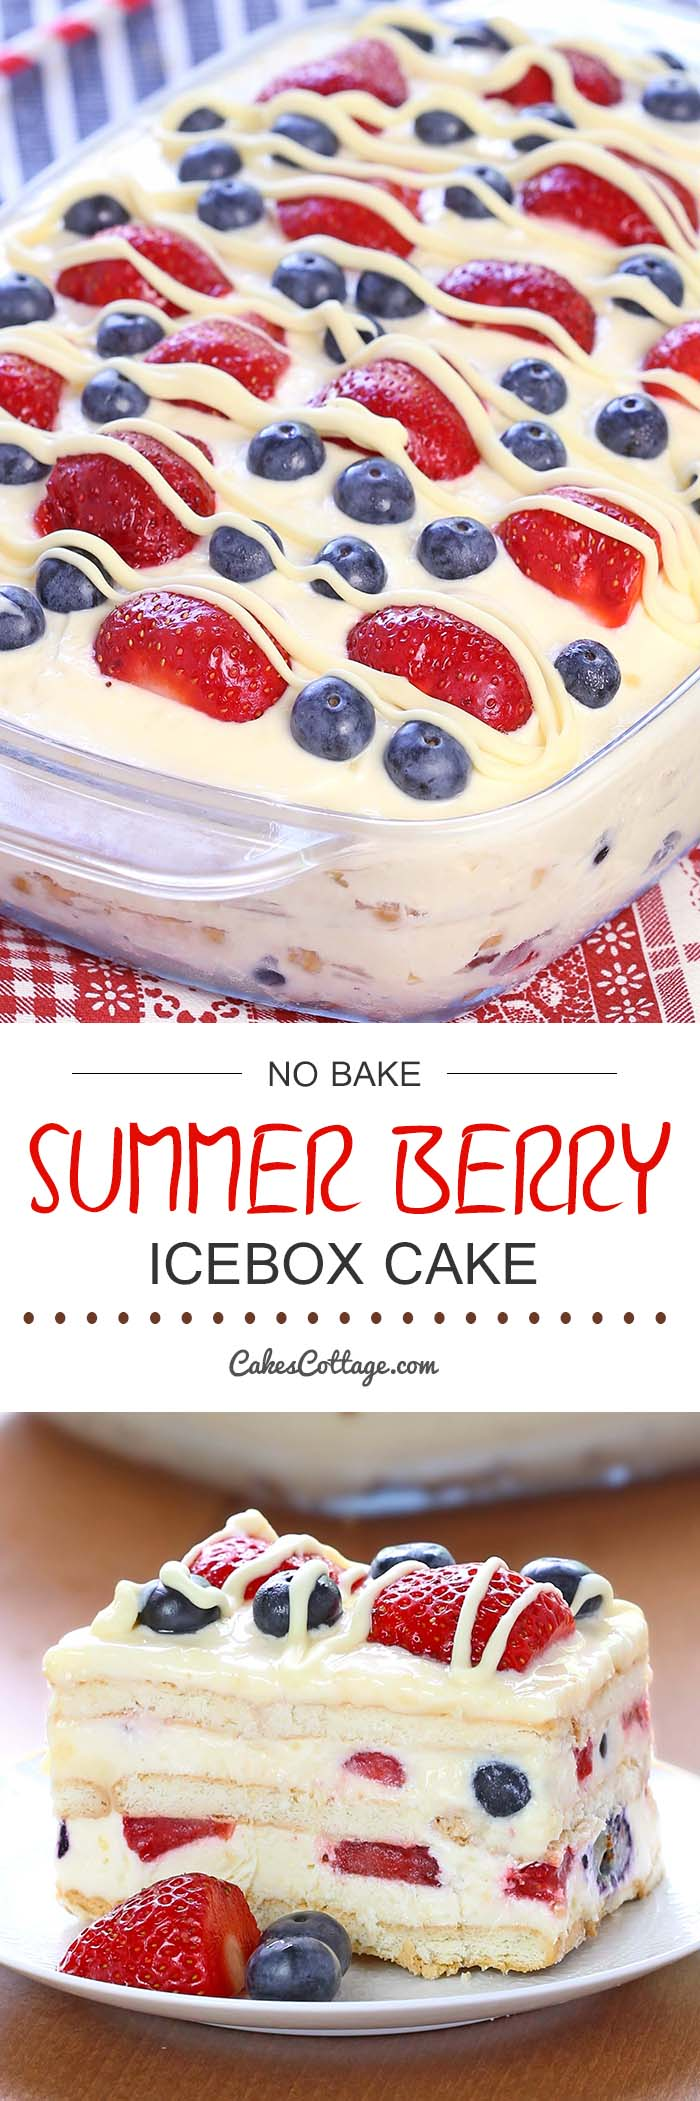 Cakescottage No Bake Summer Berry Icebox Cake Recipe